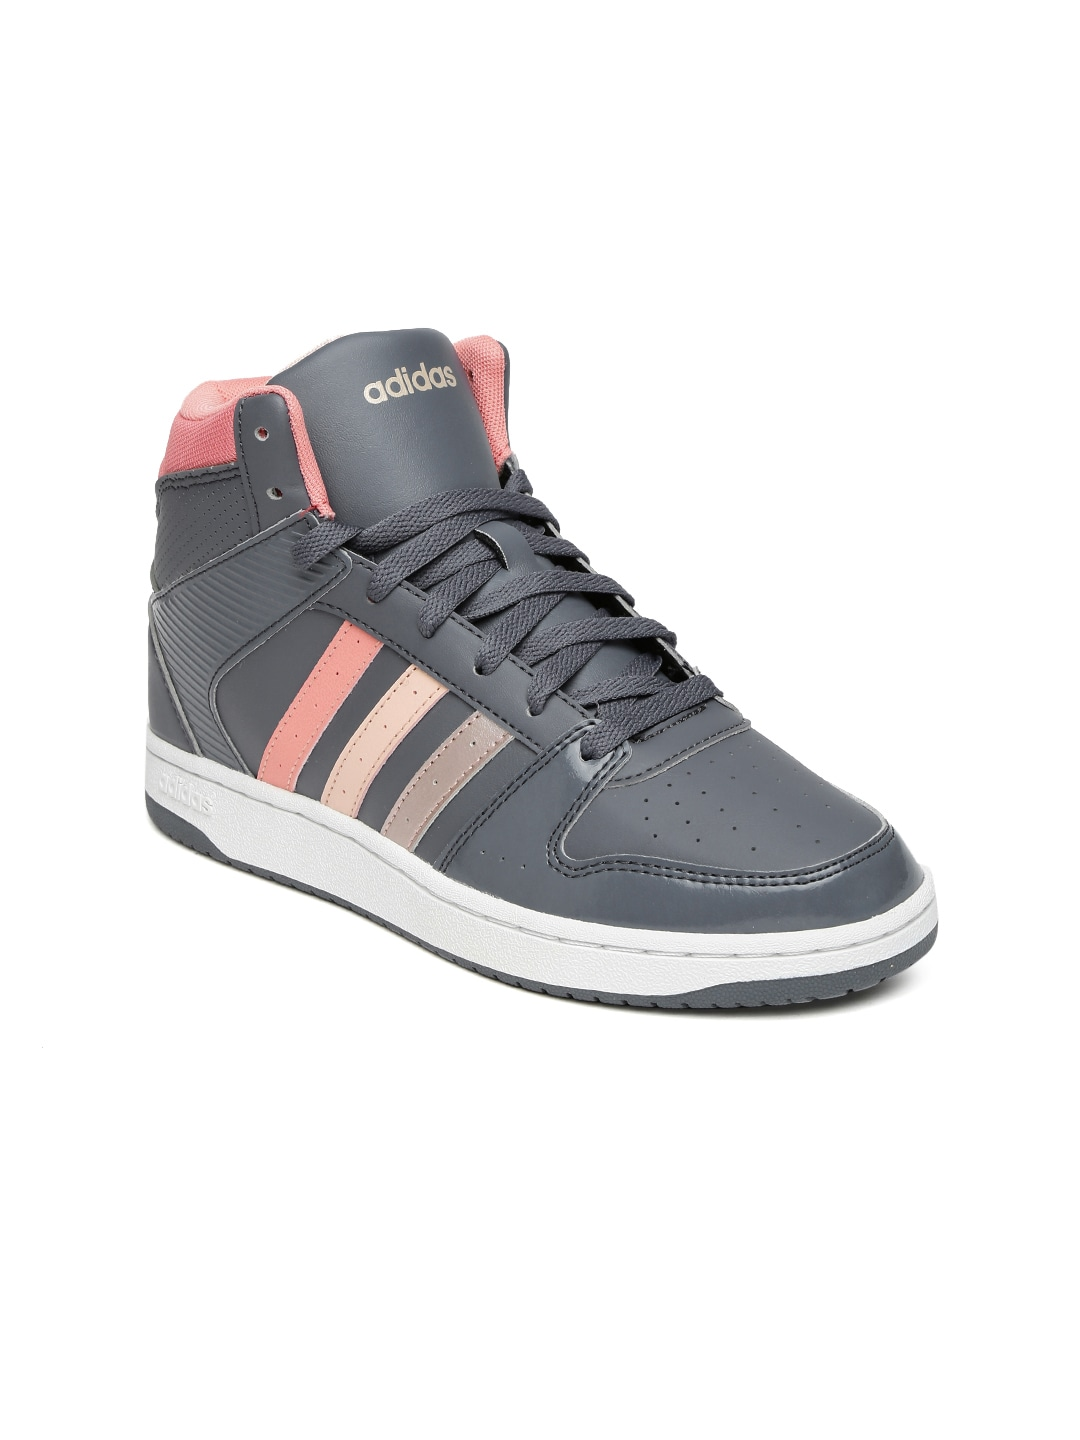 27f5fa931 Adidas Neo Shoes - Buy Adidas Neo Shoes online in India